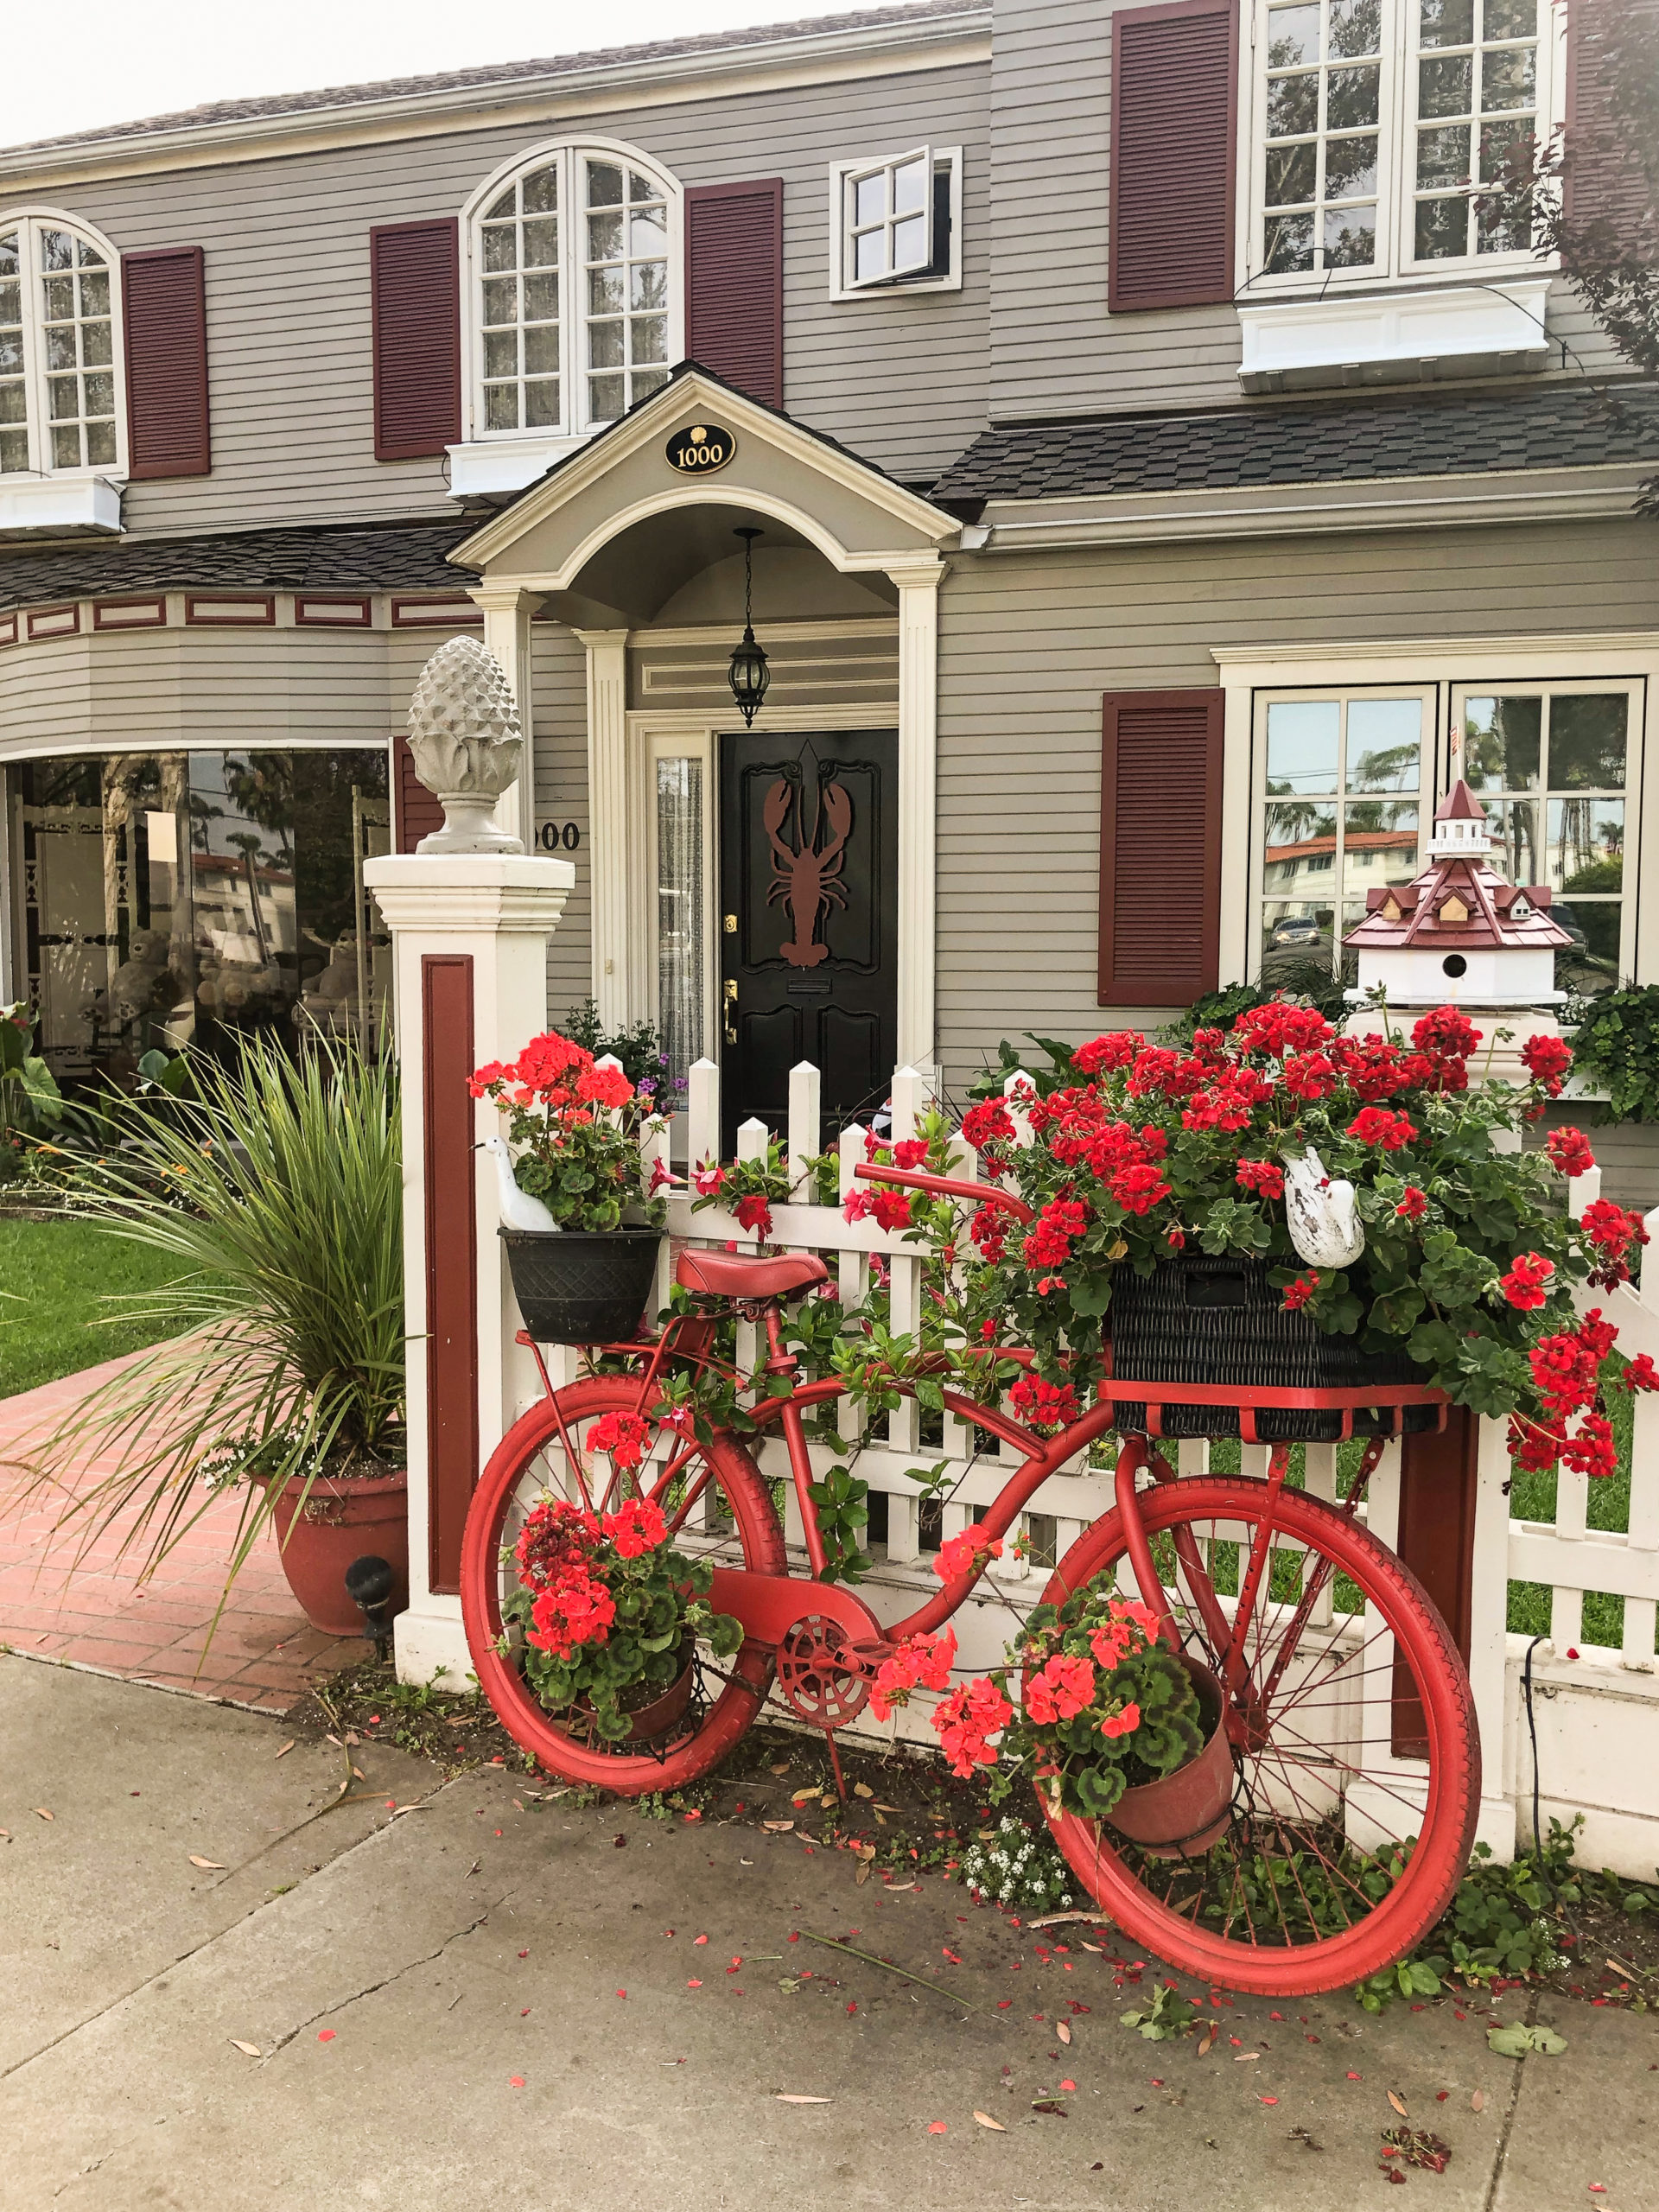 Staycation in Coronado home with red bike and flowers